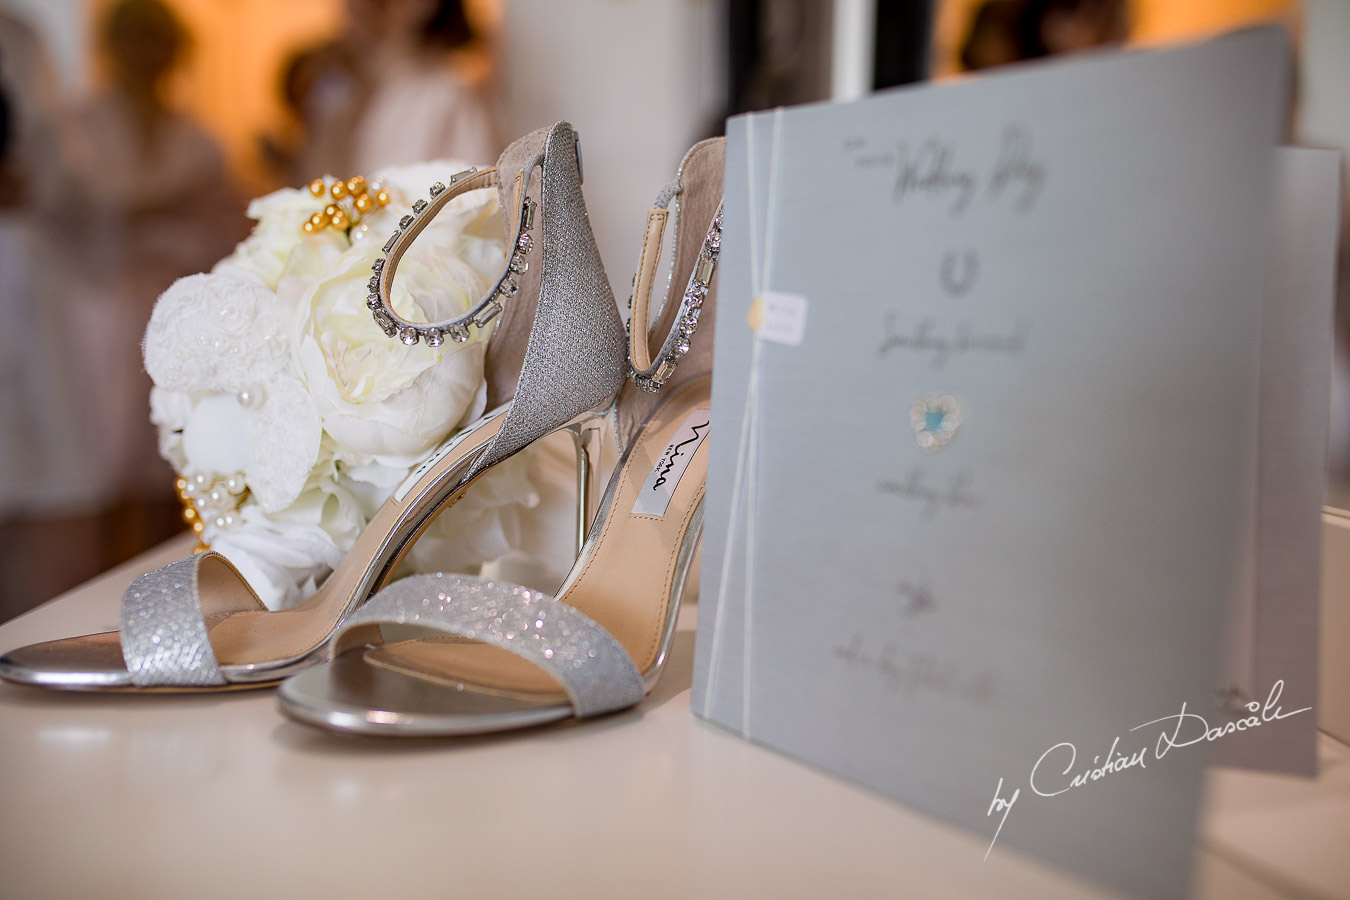 Brridal Wedding details captured during an Exquisite Wedding at Asterias Beach Hotel by Cyprus Photographer Cristian Dascalu.